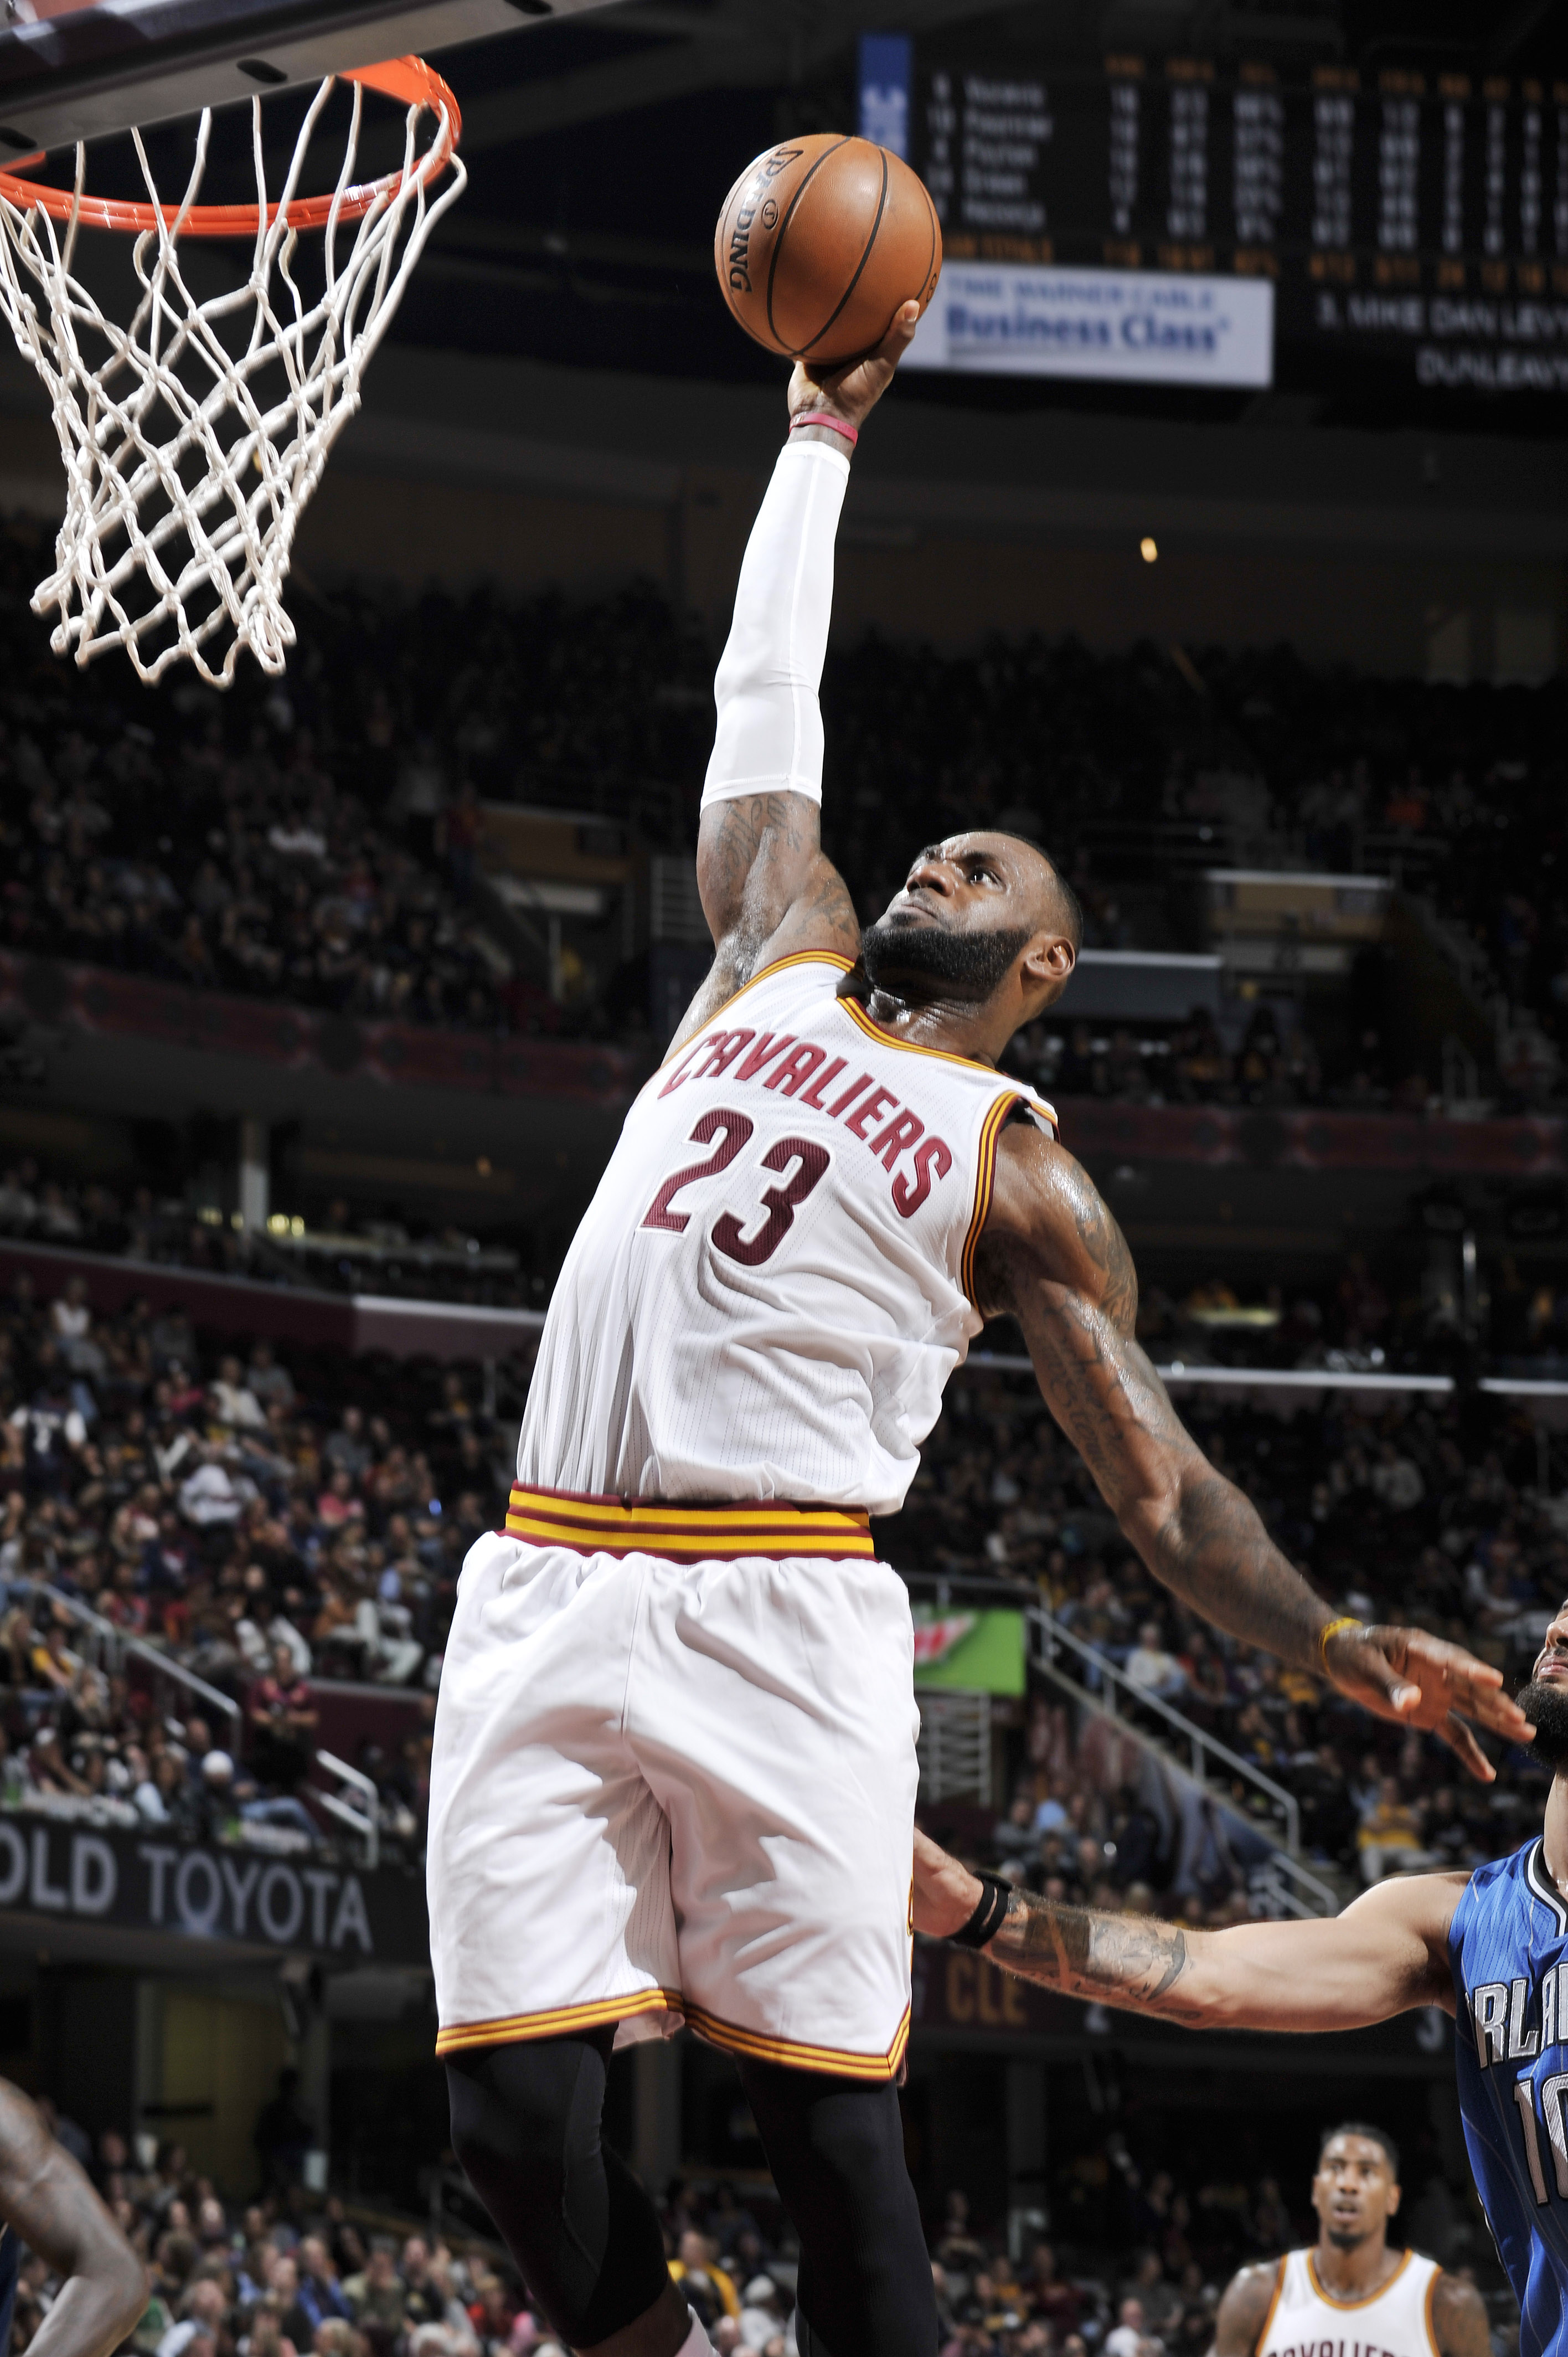 CLEVELAND, OH - OCTOBER 29:  LeBron James #23 of the Cleveland Cavaliers dunks against the Orlando Magic on October 29, 2016 at Quicken Loans Arena in Cleveland, Ohio.  (Photo by David Liam Kyle/NBAE via Getty Images)